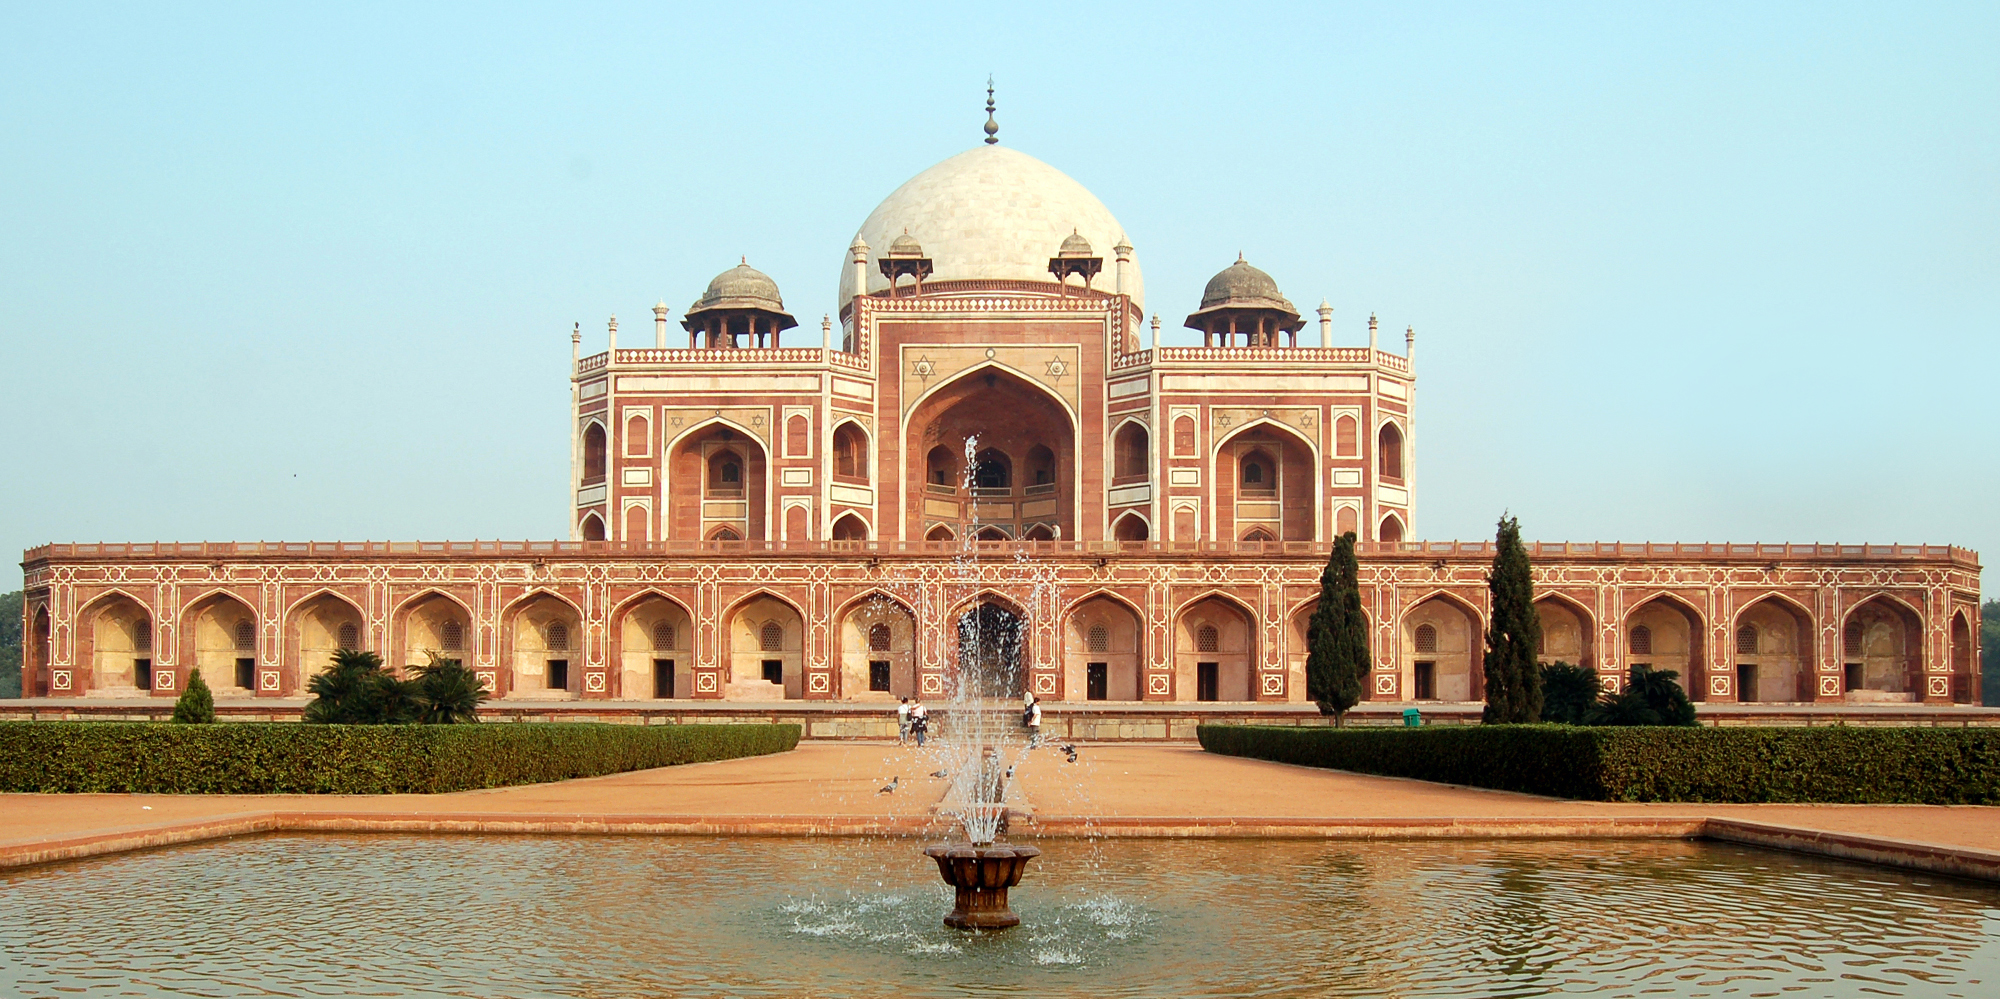 <strong>Humayun Tomb, Delhi</strong> - Humayun's Tomb - The square red sandstone double-storeyed structure.